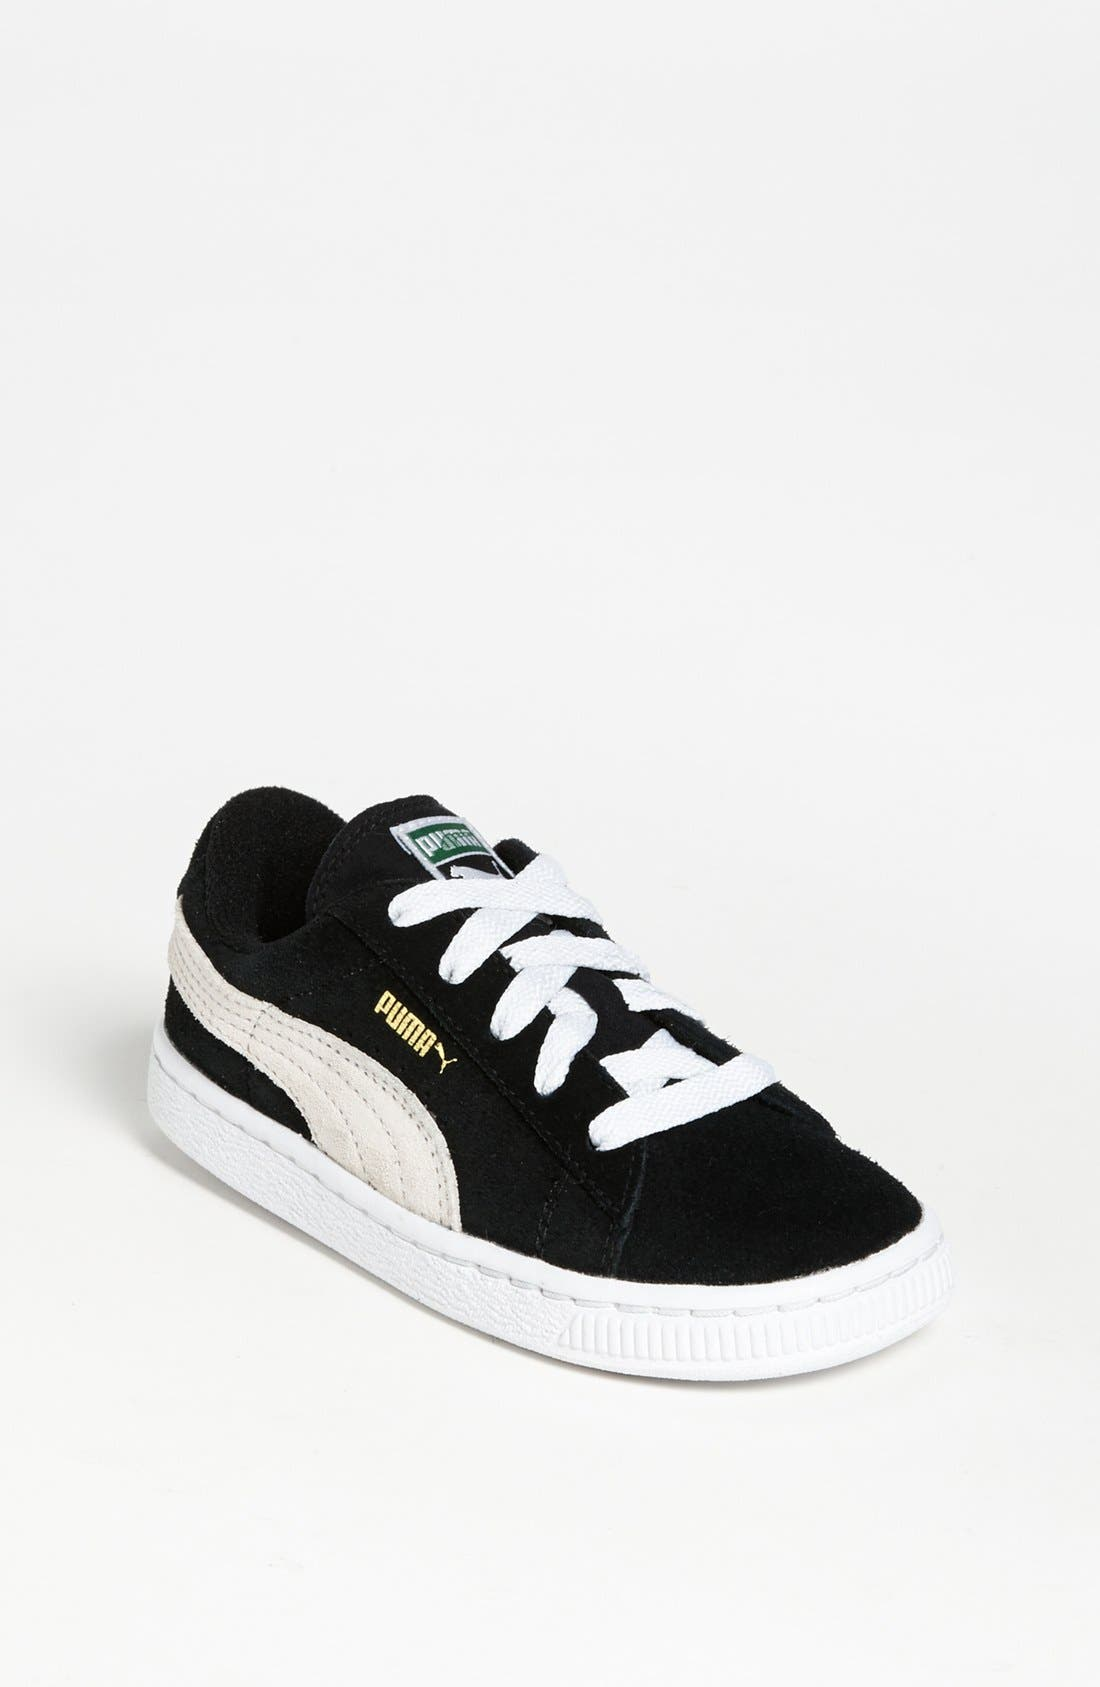 Alternate Image 1 Selected - PUMA Suede Sneaker (Baby, Walker, Toddler, Little Kid & Big Kid)